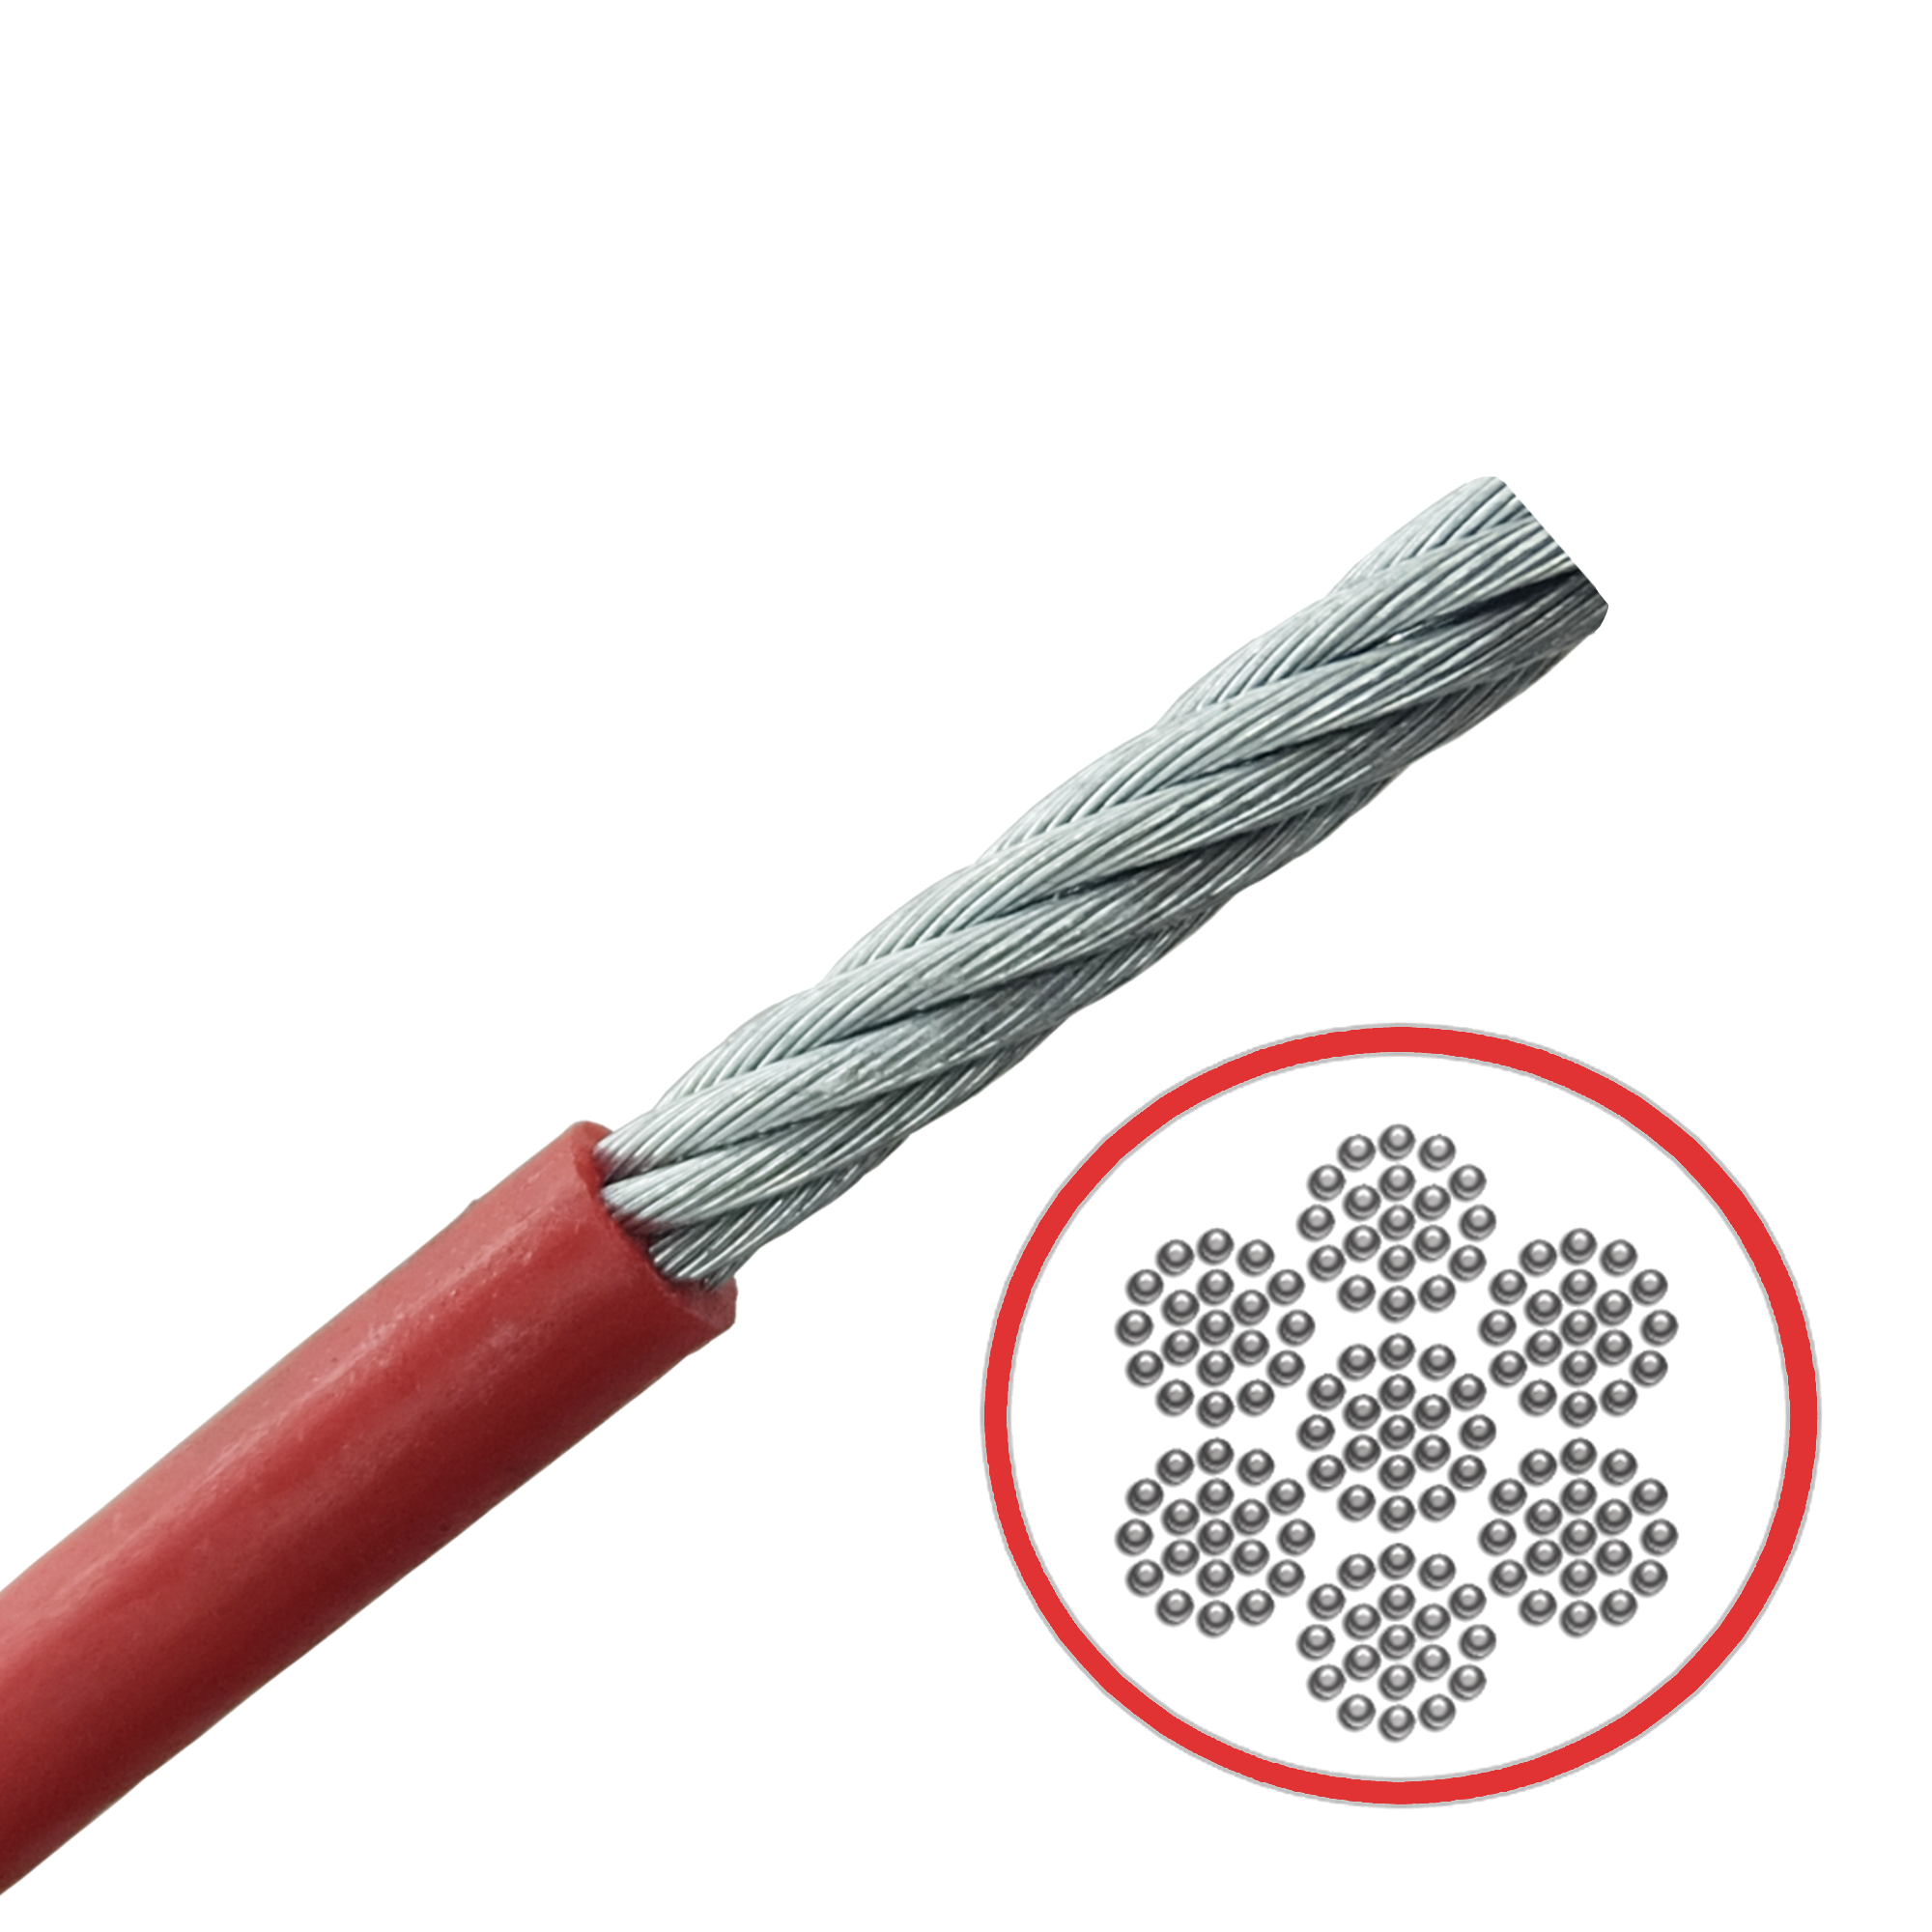 Red PVC Coated Galvanised Steel Very Flexible 7x19 Cable - 514.004.060